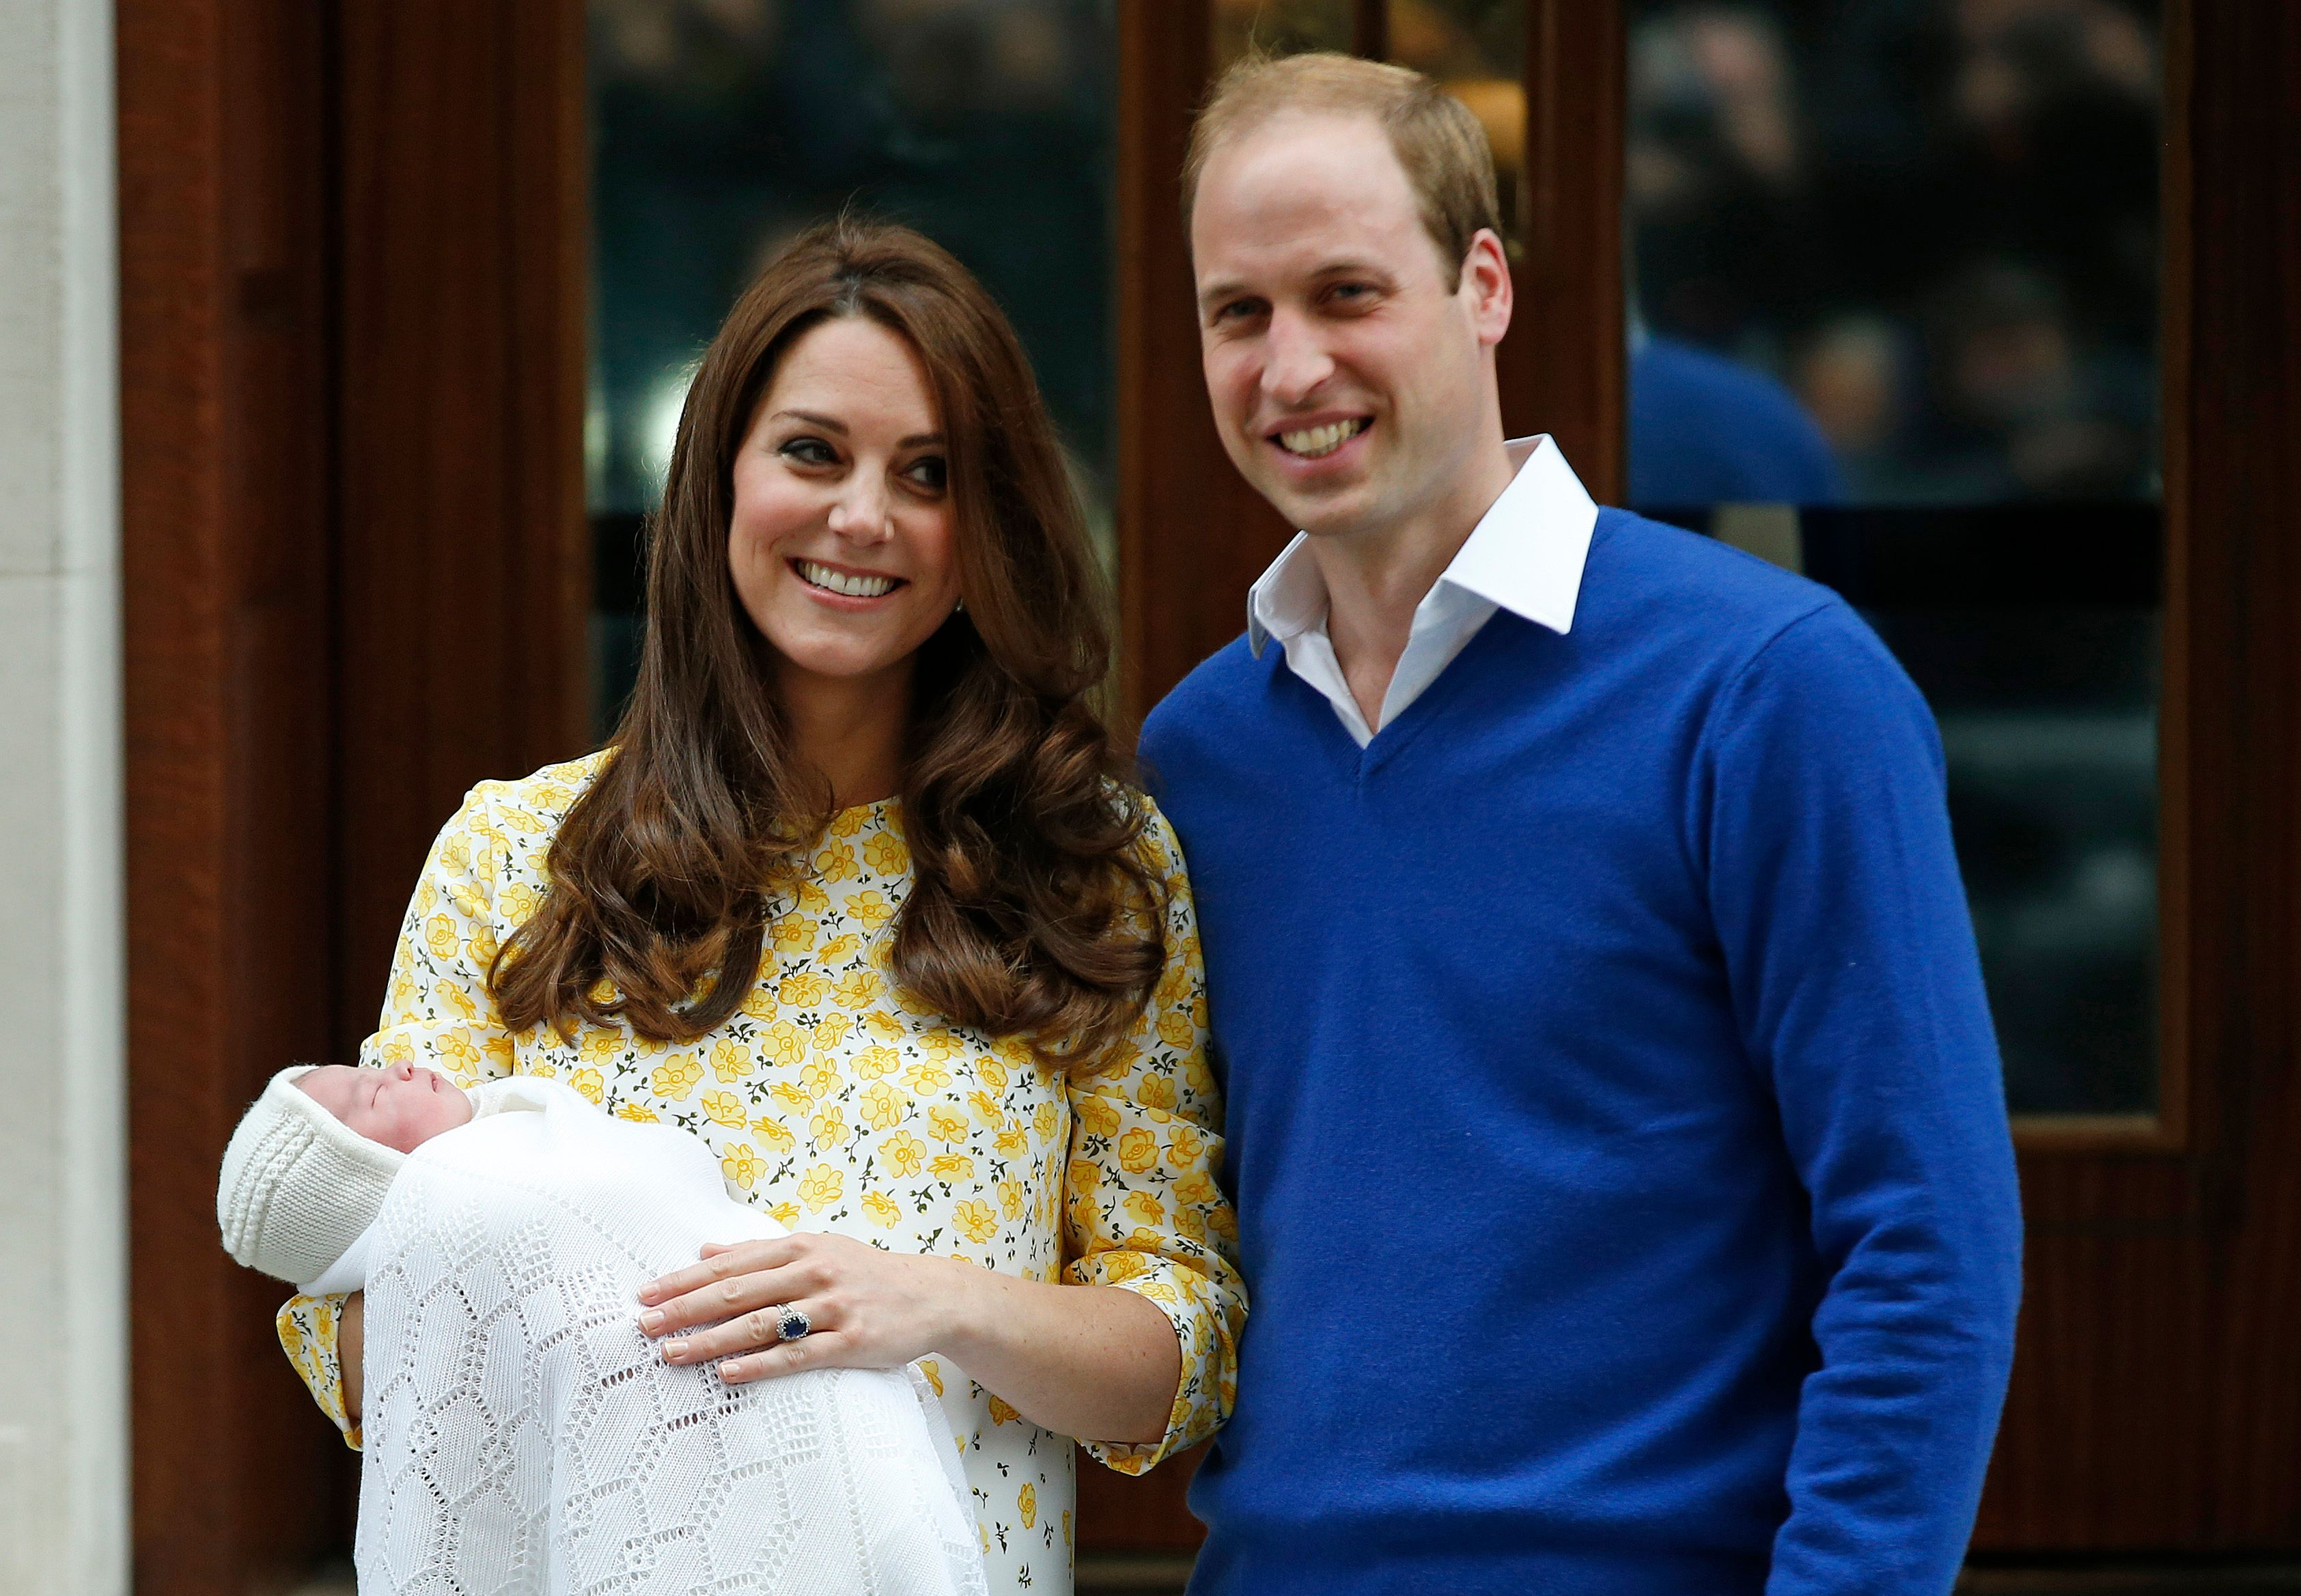 Prince William and Kate Middleton introducing Princess Charlotte to the world